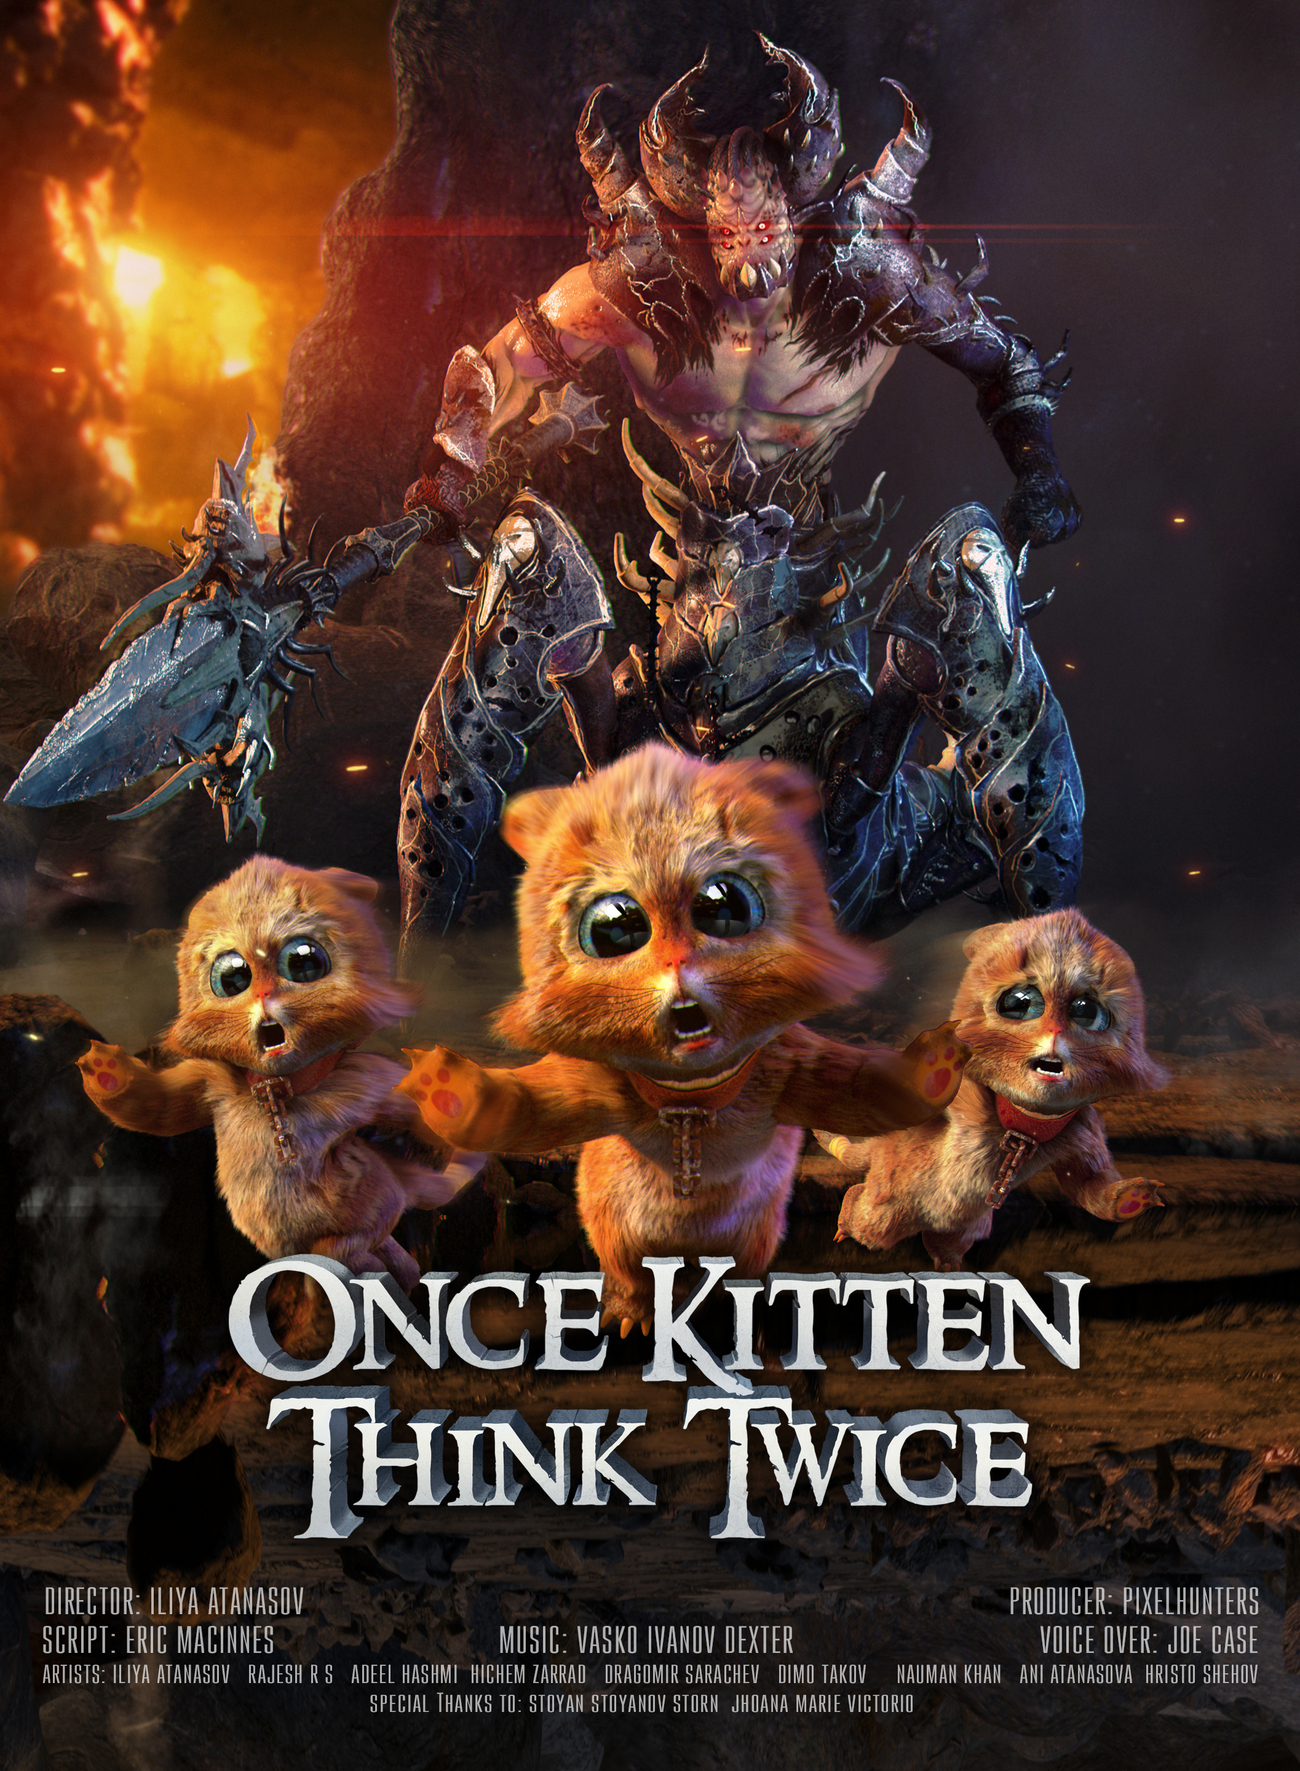 Once Kitten, Think Twice by pixelhunters